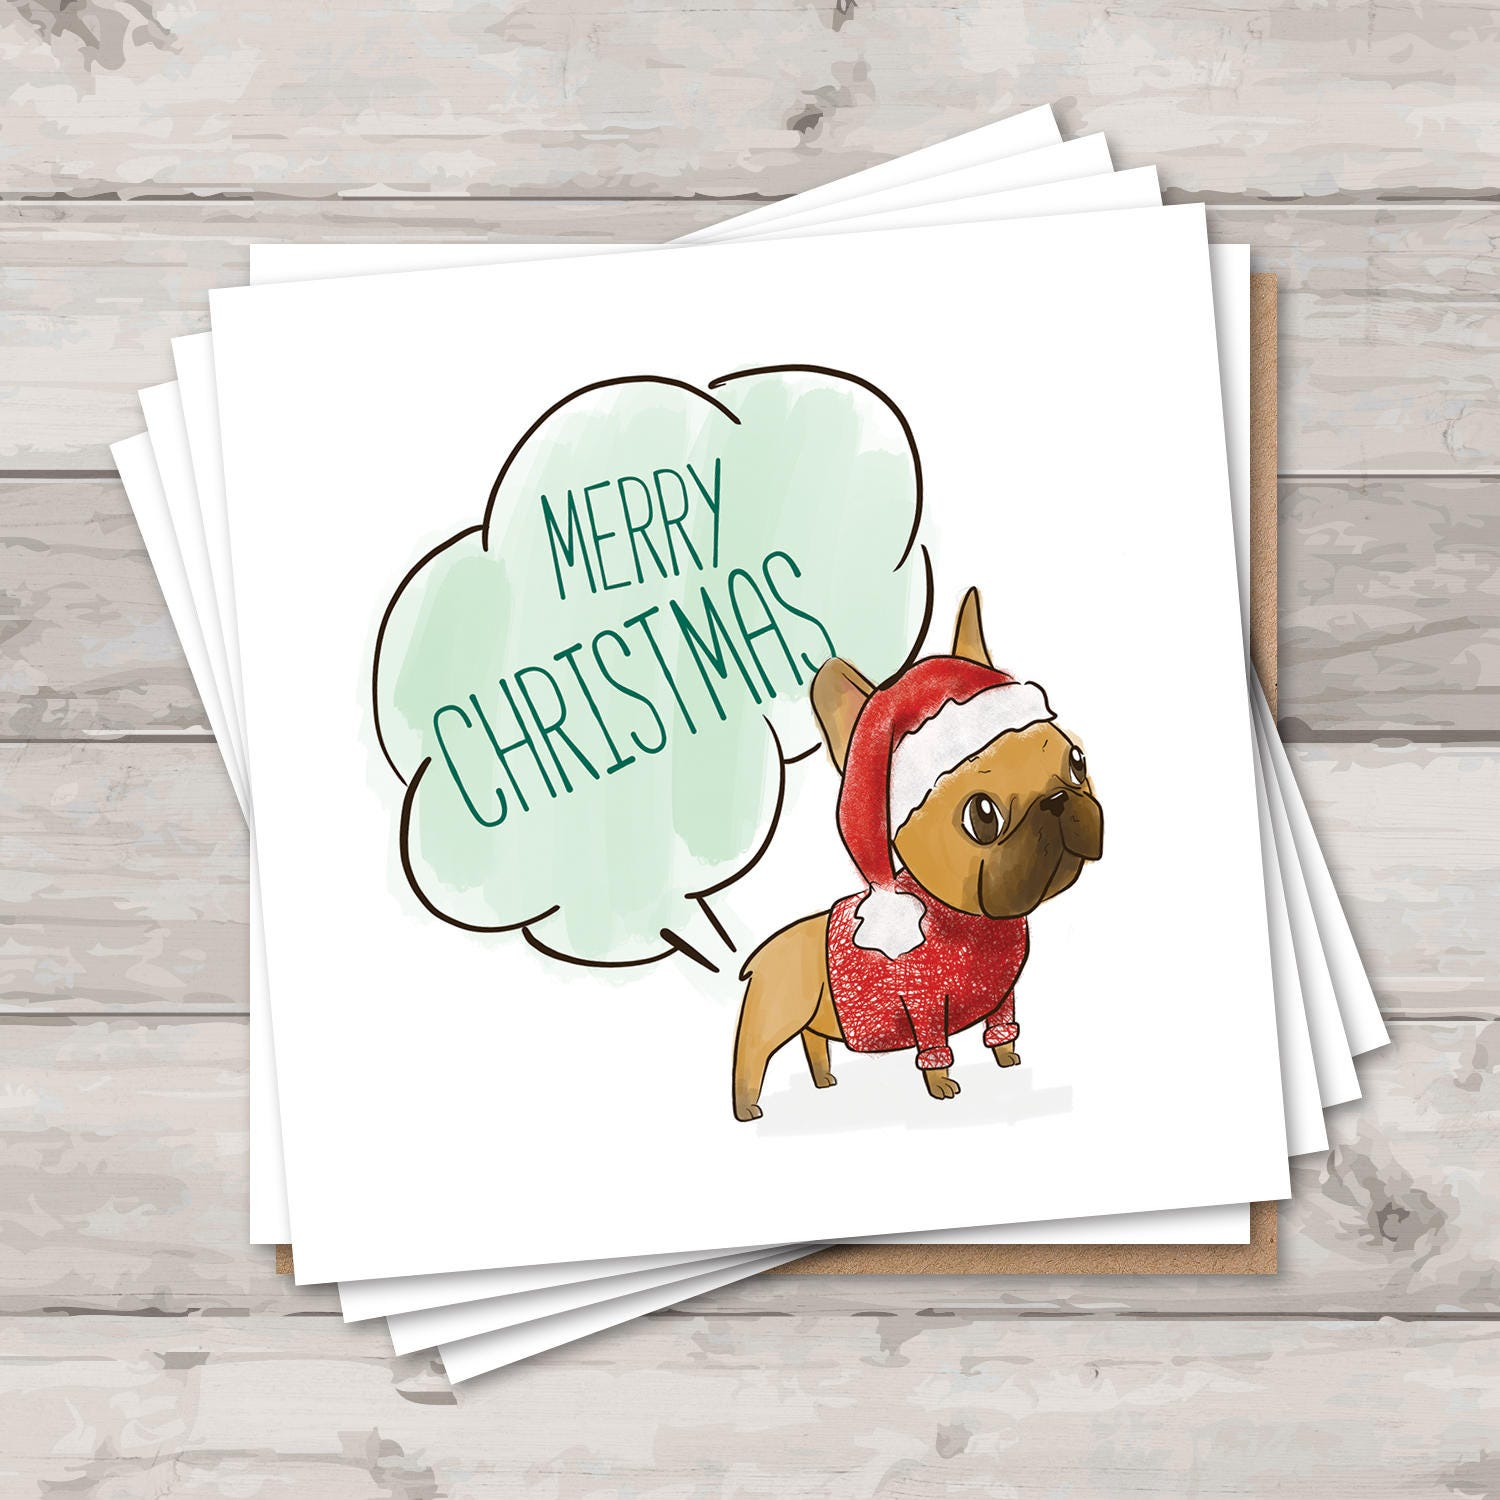 Pack of 20 french bulldog christmas cards holiday card set etsy zoom m4hsunfo